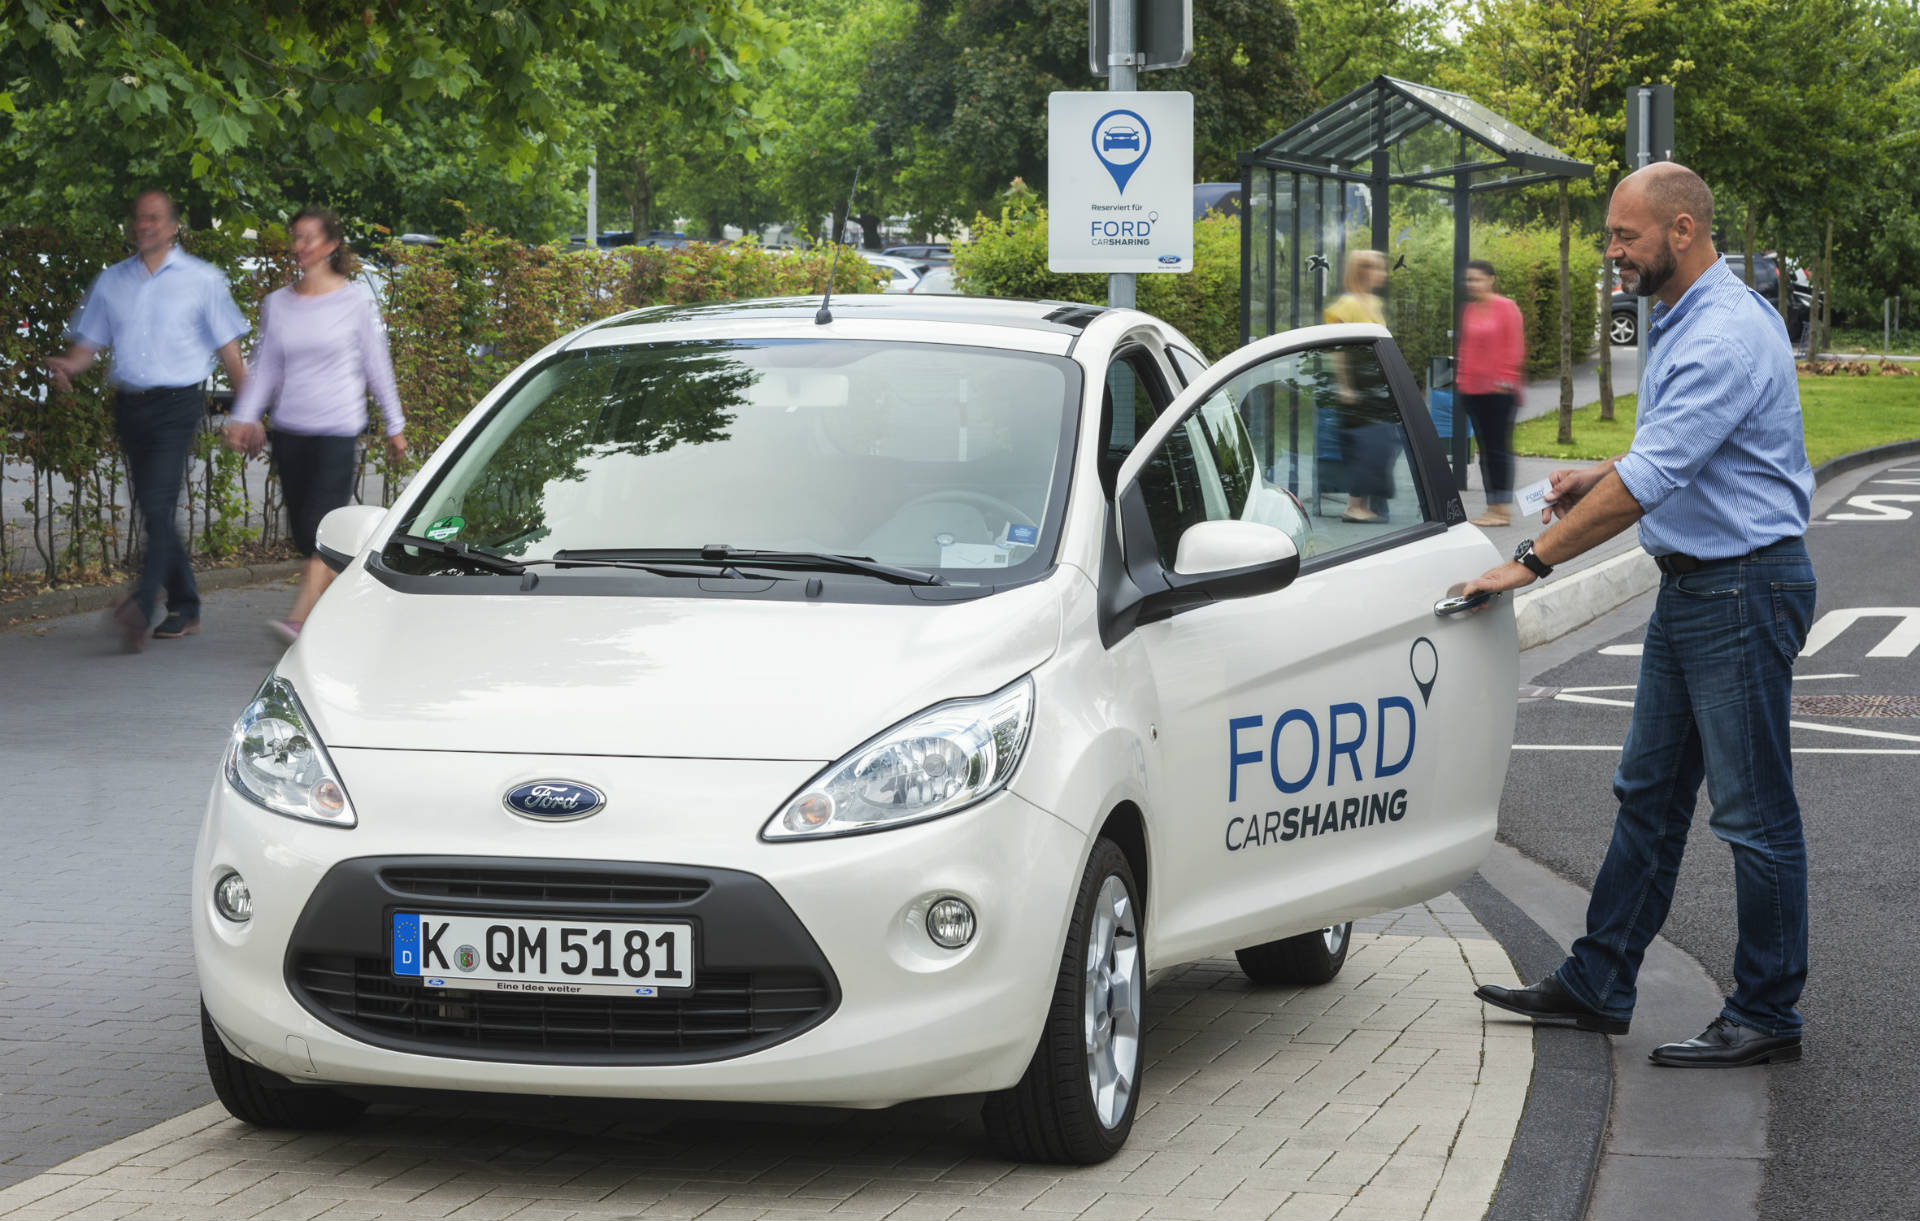 Ford Carsharing an der Station